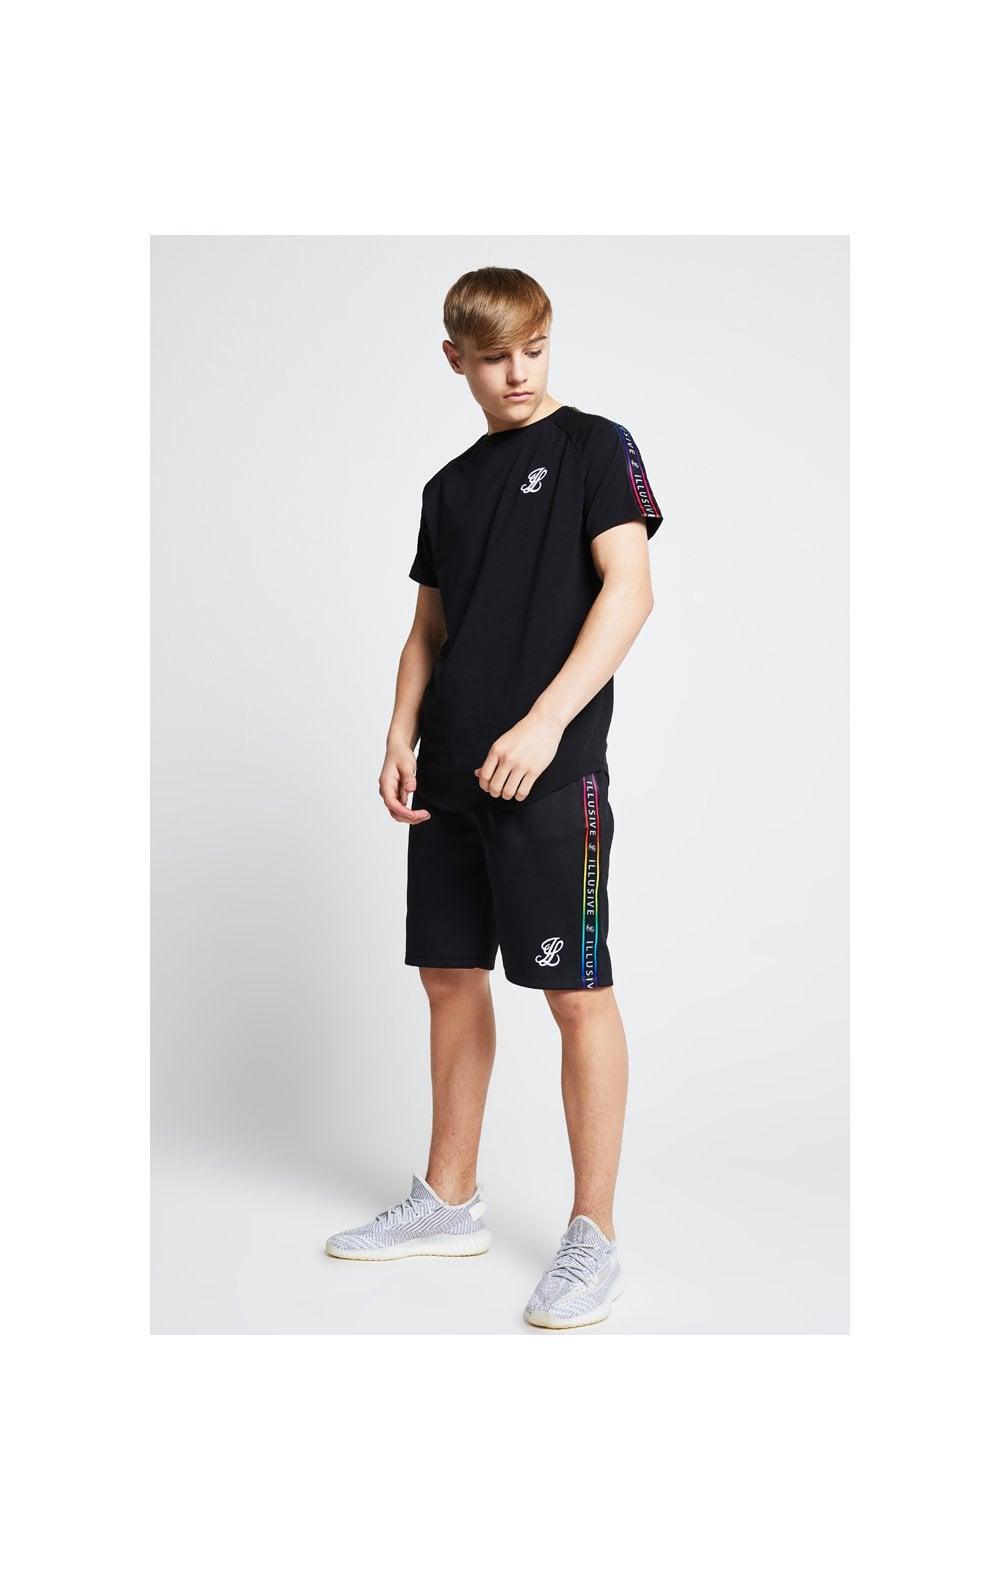 Illusive London Taped Raglan Tee - Black (2)